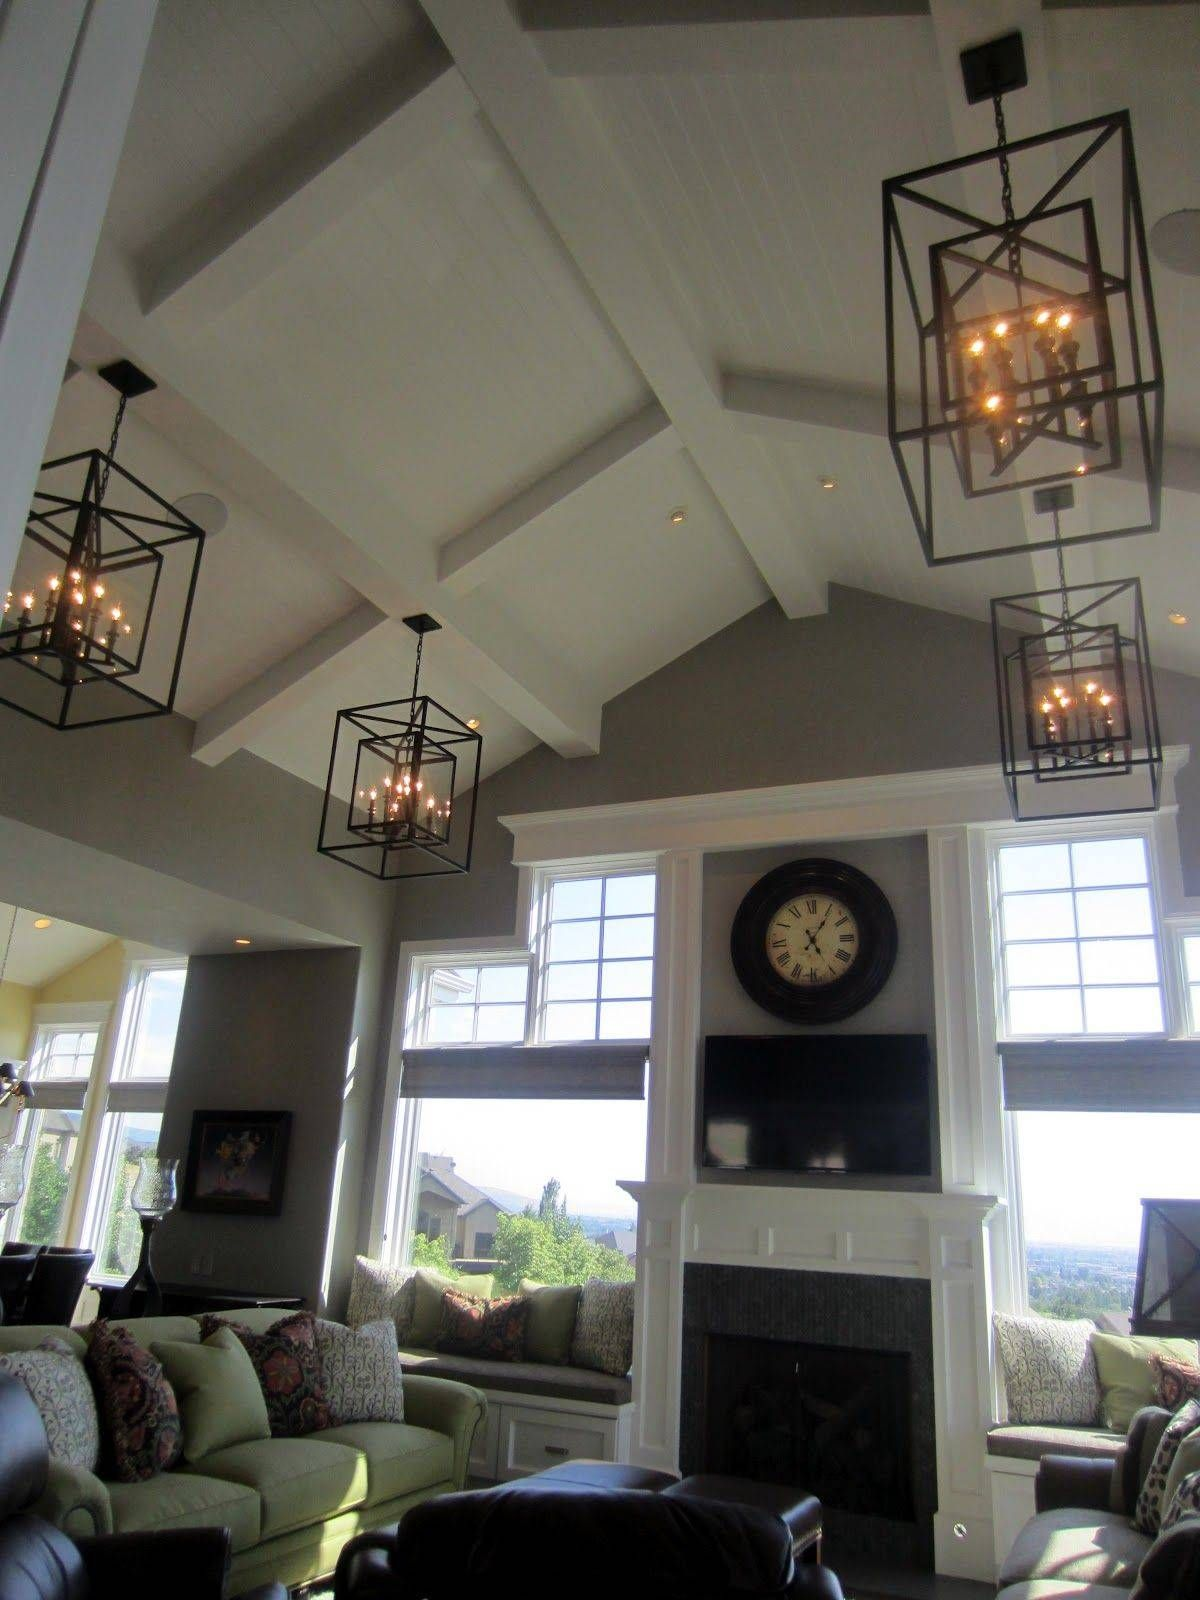 Fresh Lighting Ideas For Pitched Ceilings Homedecor Interiordesign Interior H Vaulted Ceiling Lighting High Ceiling Lighting High Ceiling Lighting Fixtures